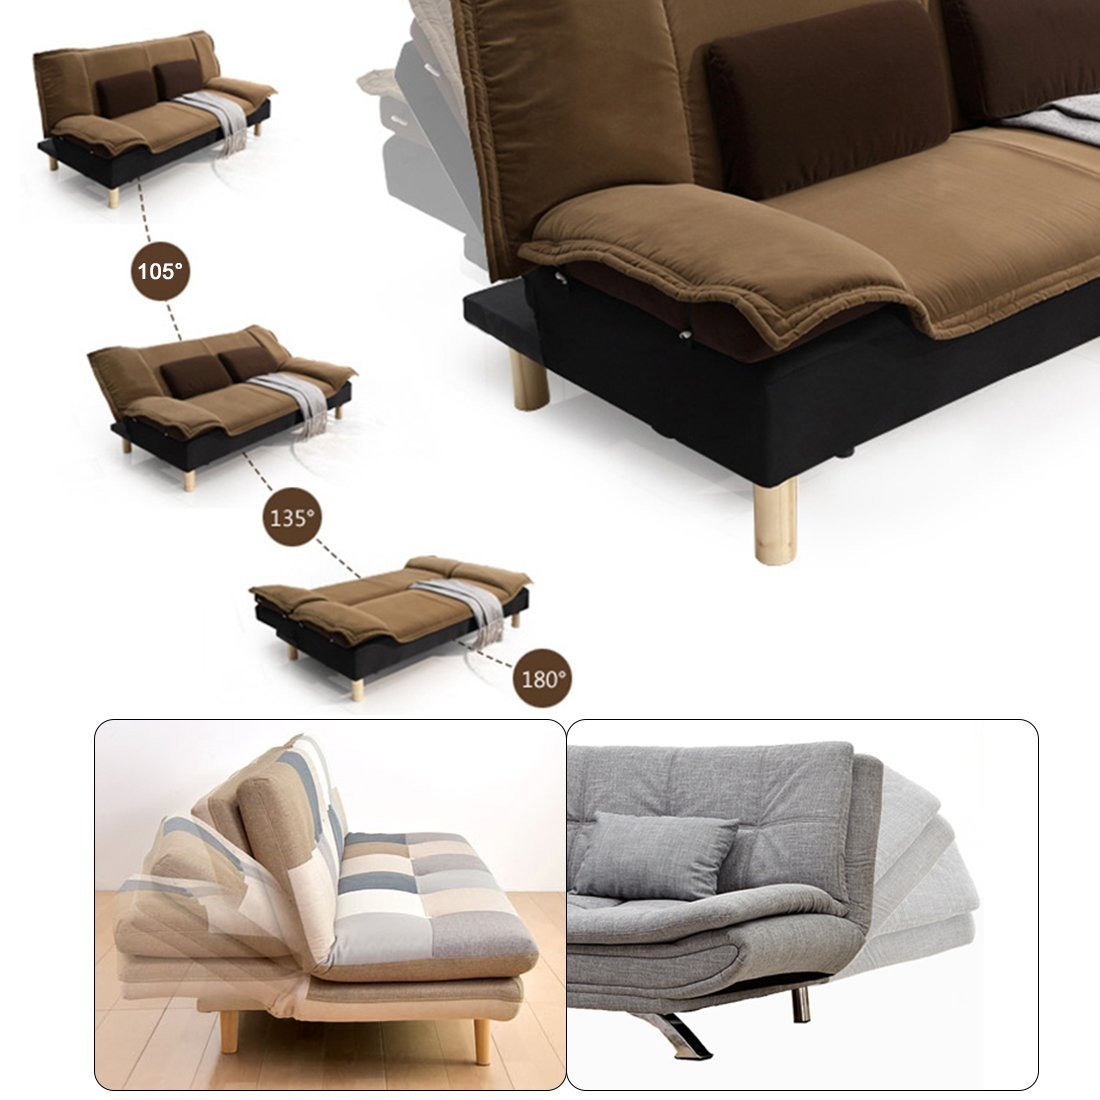 1pair Adjule Sofa Bed 0 Degree 45 75 Angle Mechanism Hinge 230mm Length Connector Hardware In Cabinet Hinges From Home